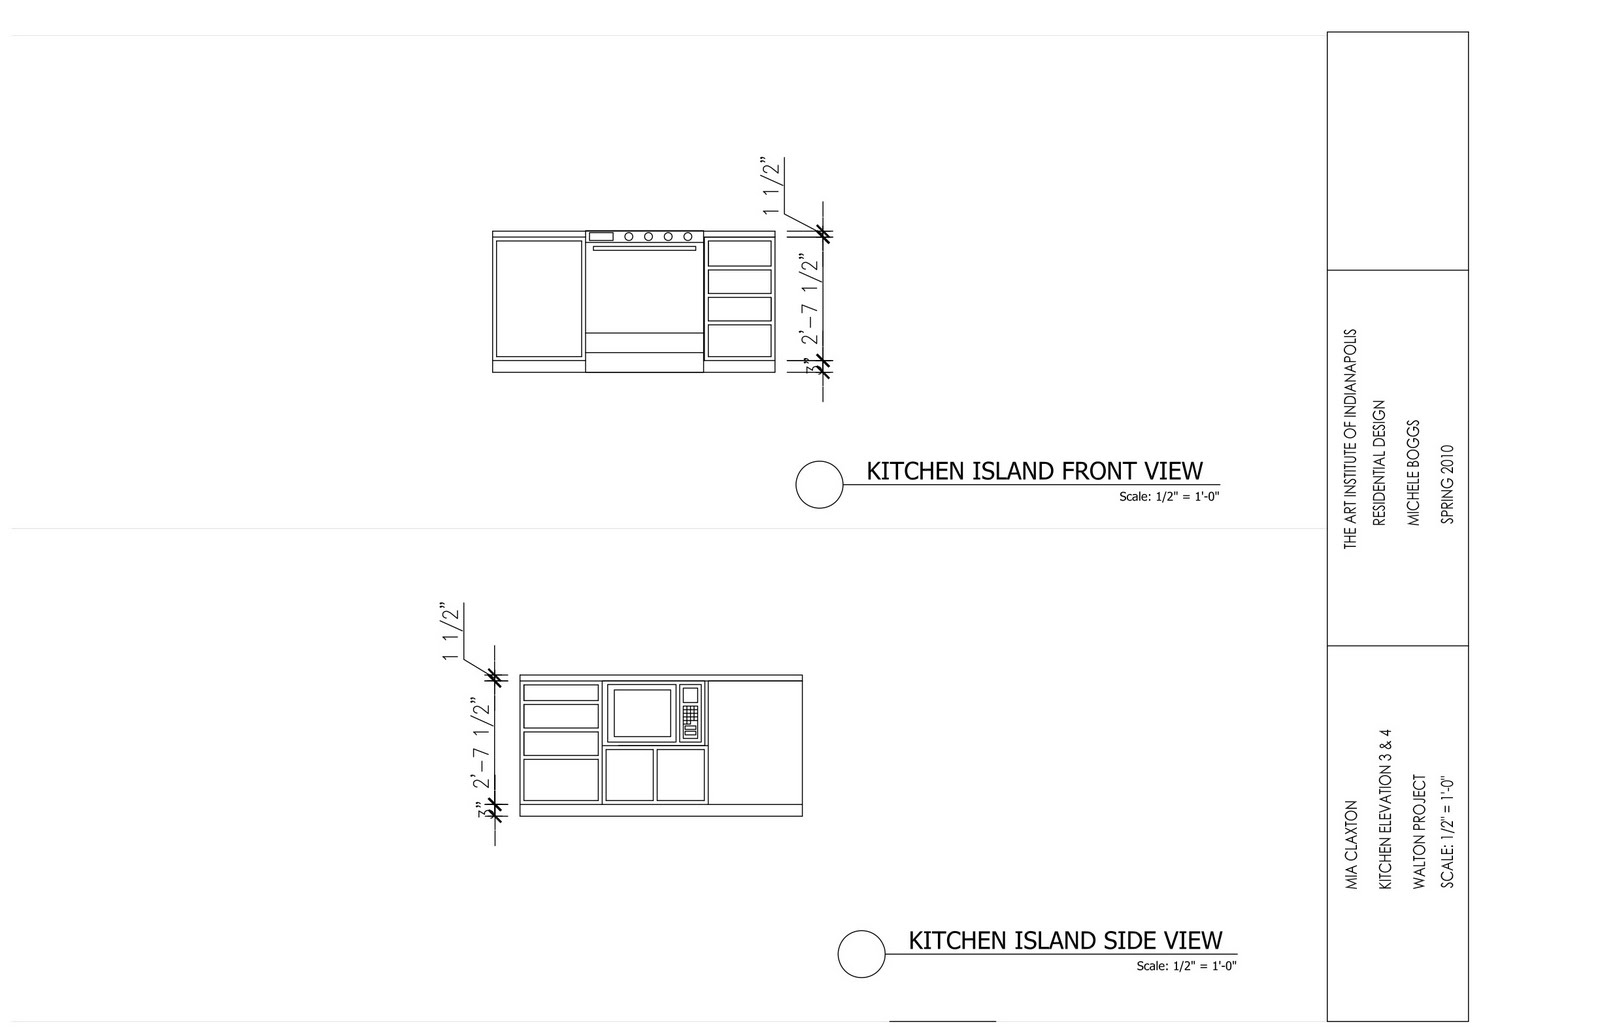 Kitchen Island Elevation walton project | aim to design